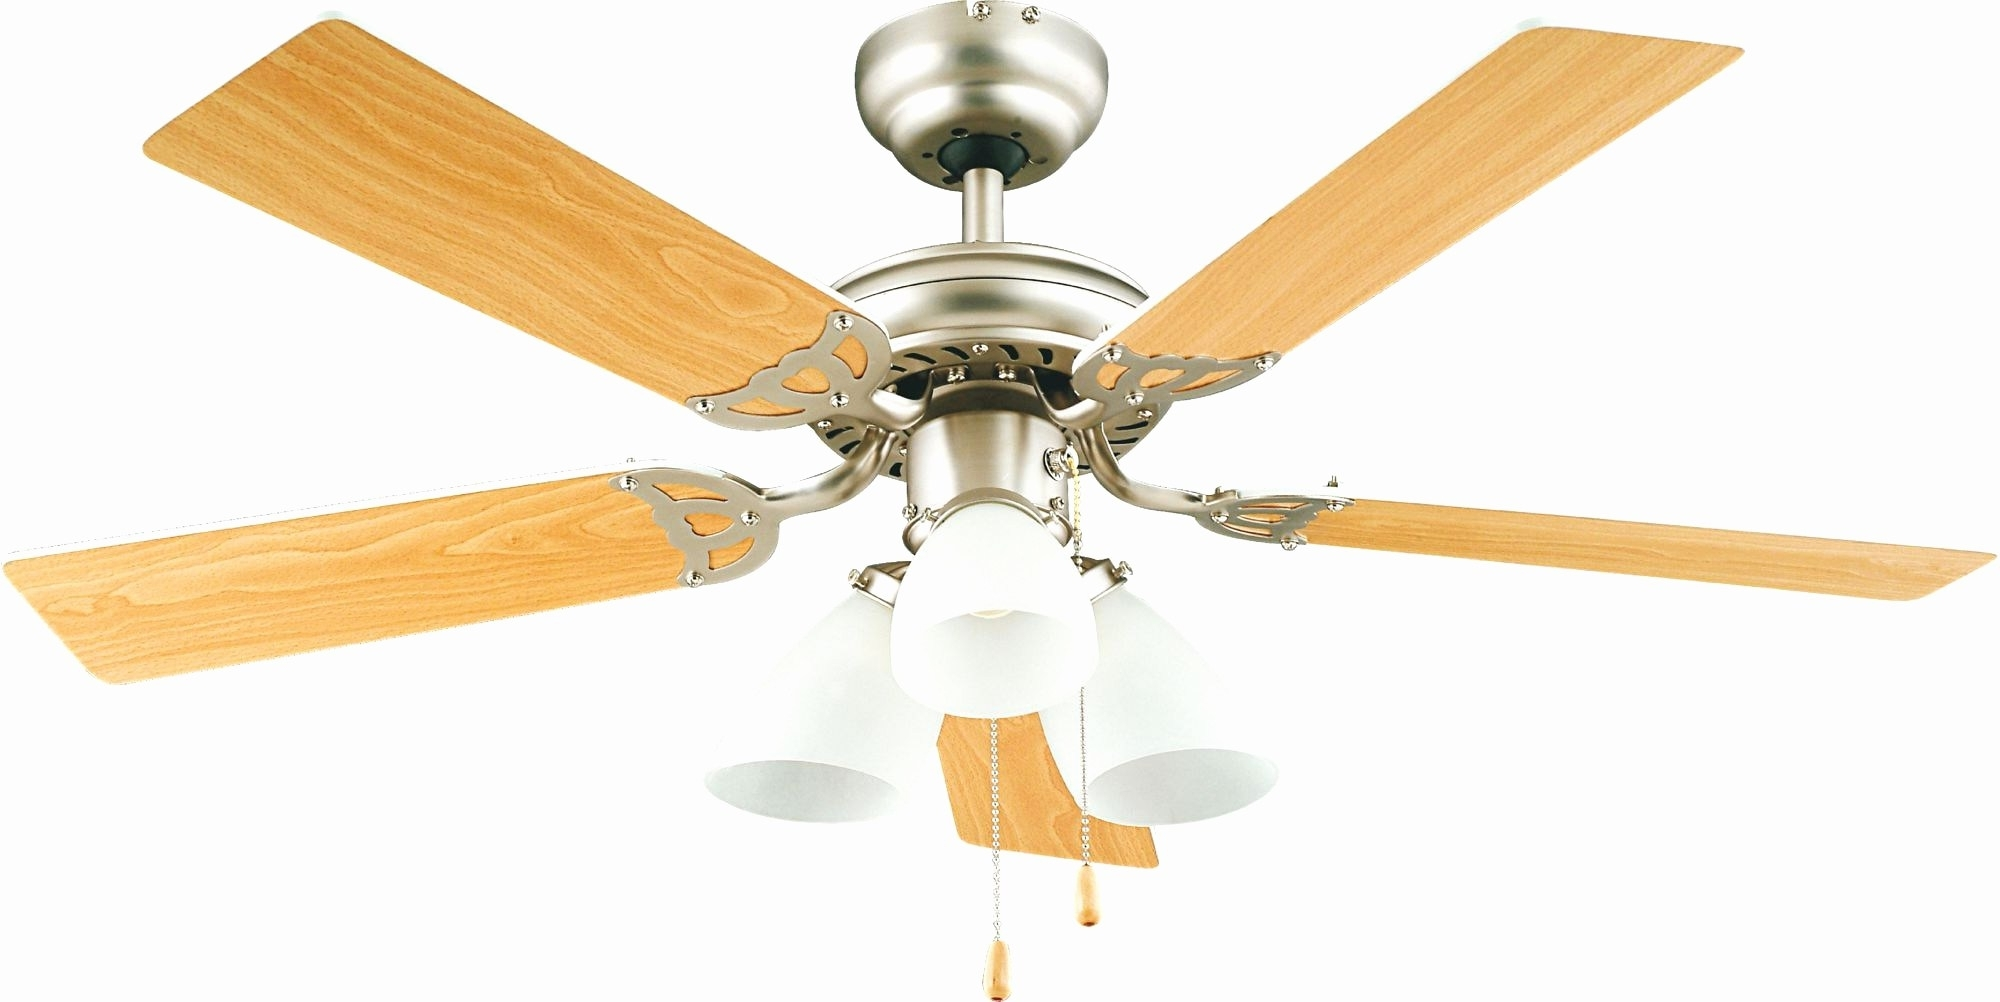 Outdoor Ceiling Fans For Windy Areas Regarding Fashionable Artistic Of Kitchen Ceiling Fan Light Outdoor Ceiling Fans Light (View 4 of 20)